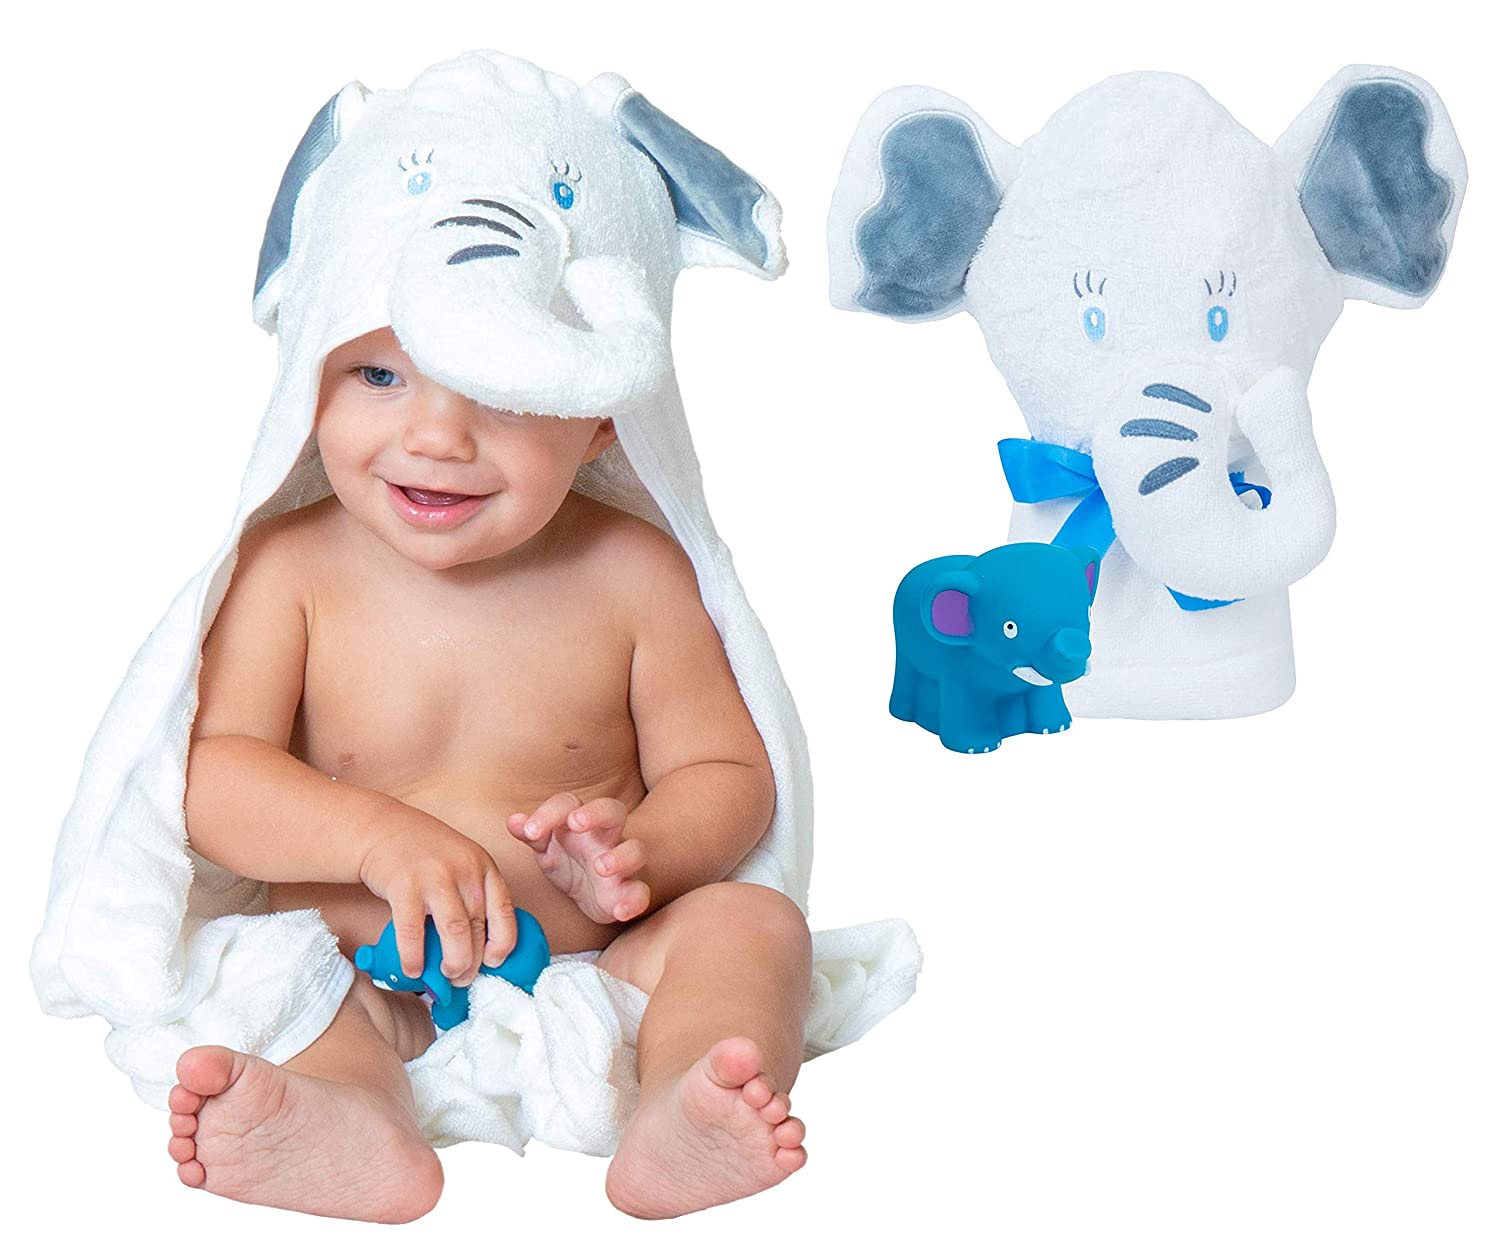 """Organic Bamboo Baby Hooded Towel – Luxury Baby Bath Towel with Elephant Hood, Safe for Newborns with Sensitive Skin – Large Premium Hooded Towels for Boys & Girls + Bonus Bath Toy by Pupiki, 40x28"""""""